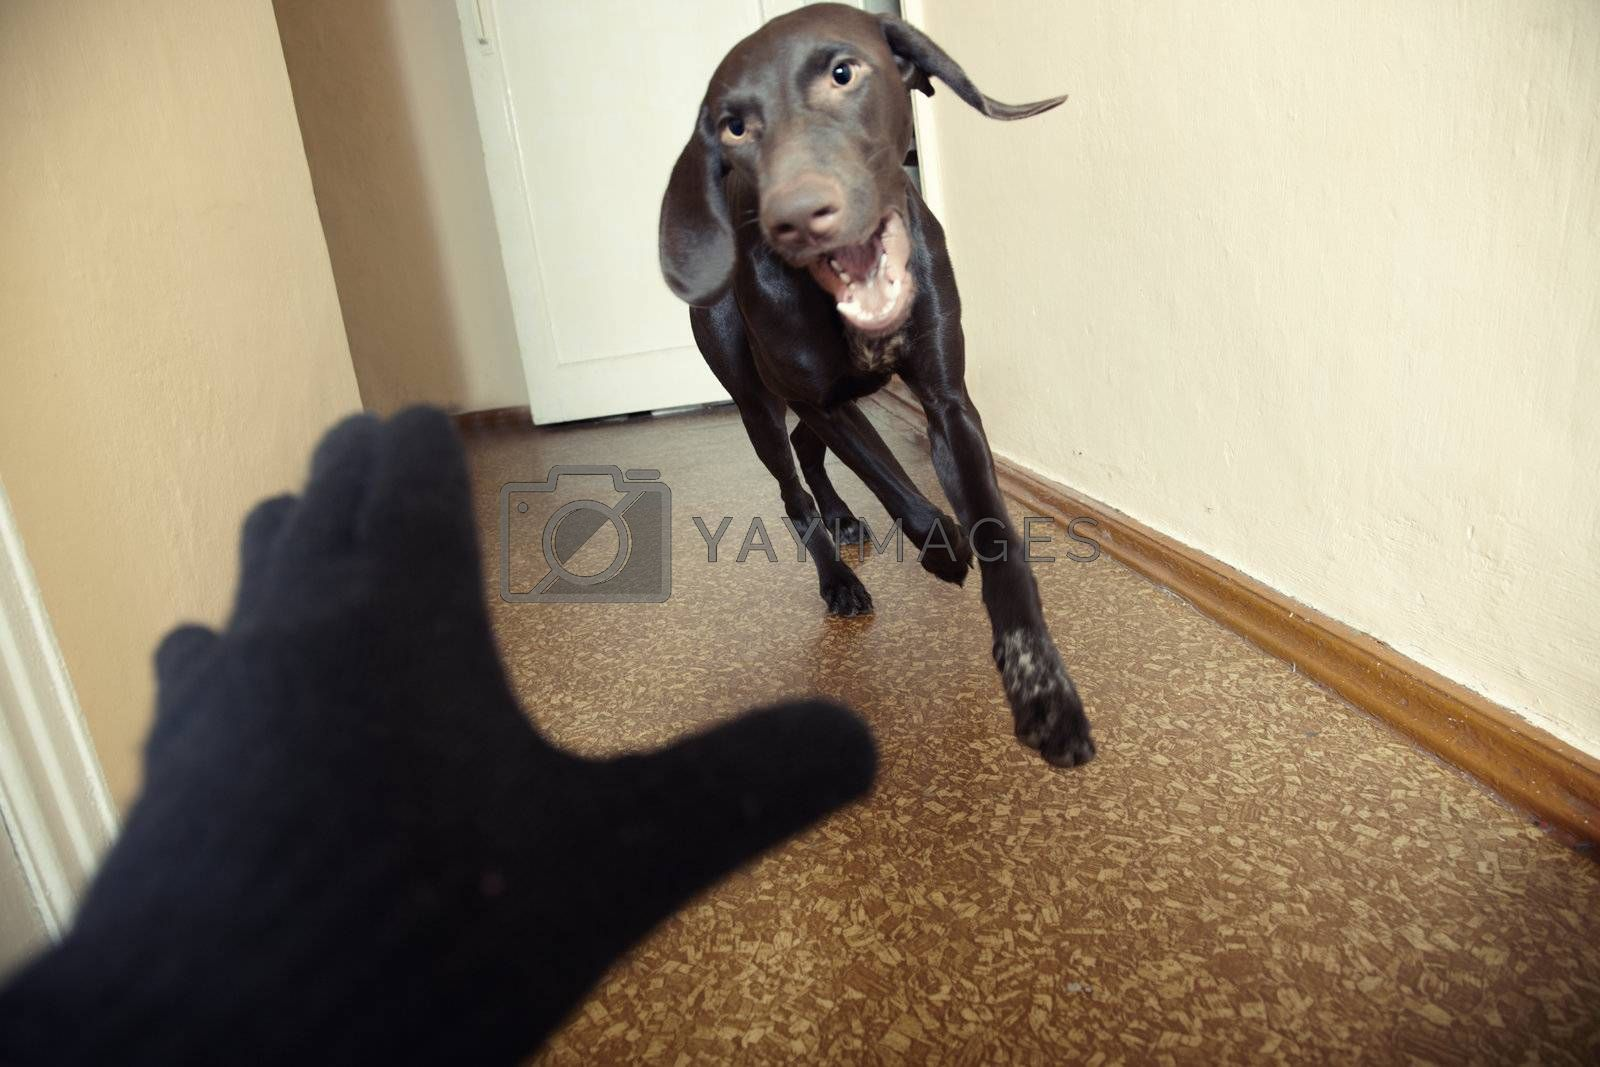 Dog attacking thief in black gloves. Natural light and colors. Motion blur added for dynamics effect